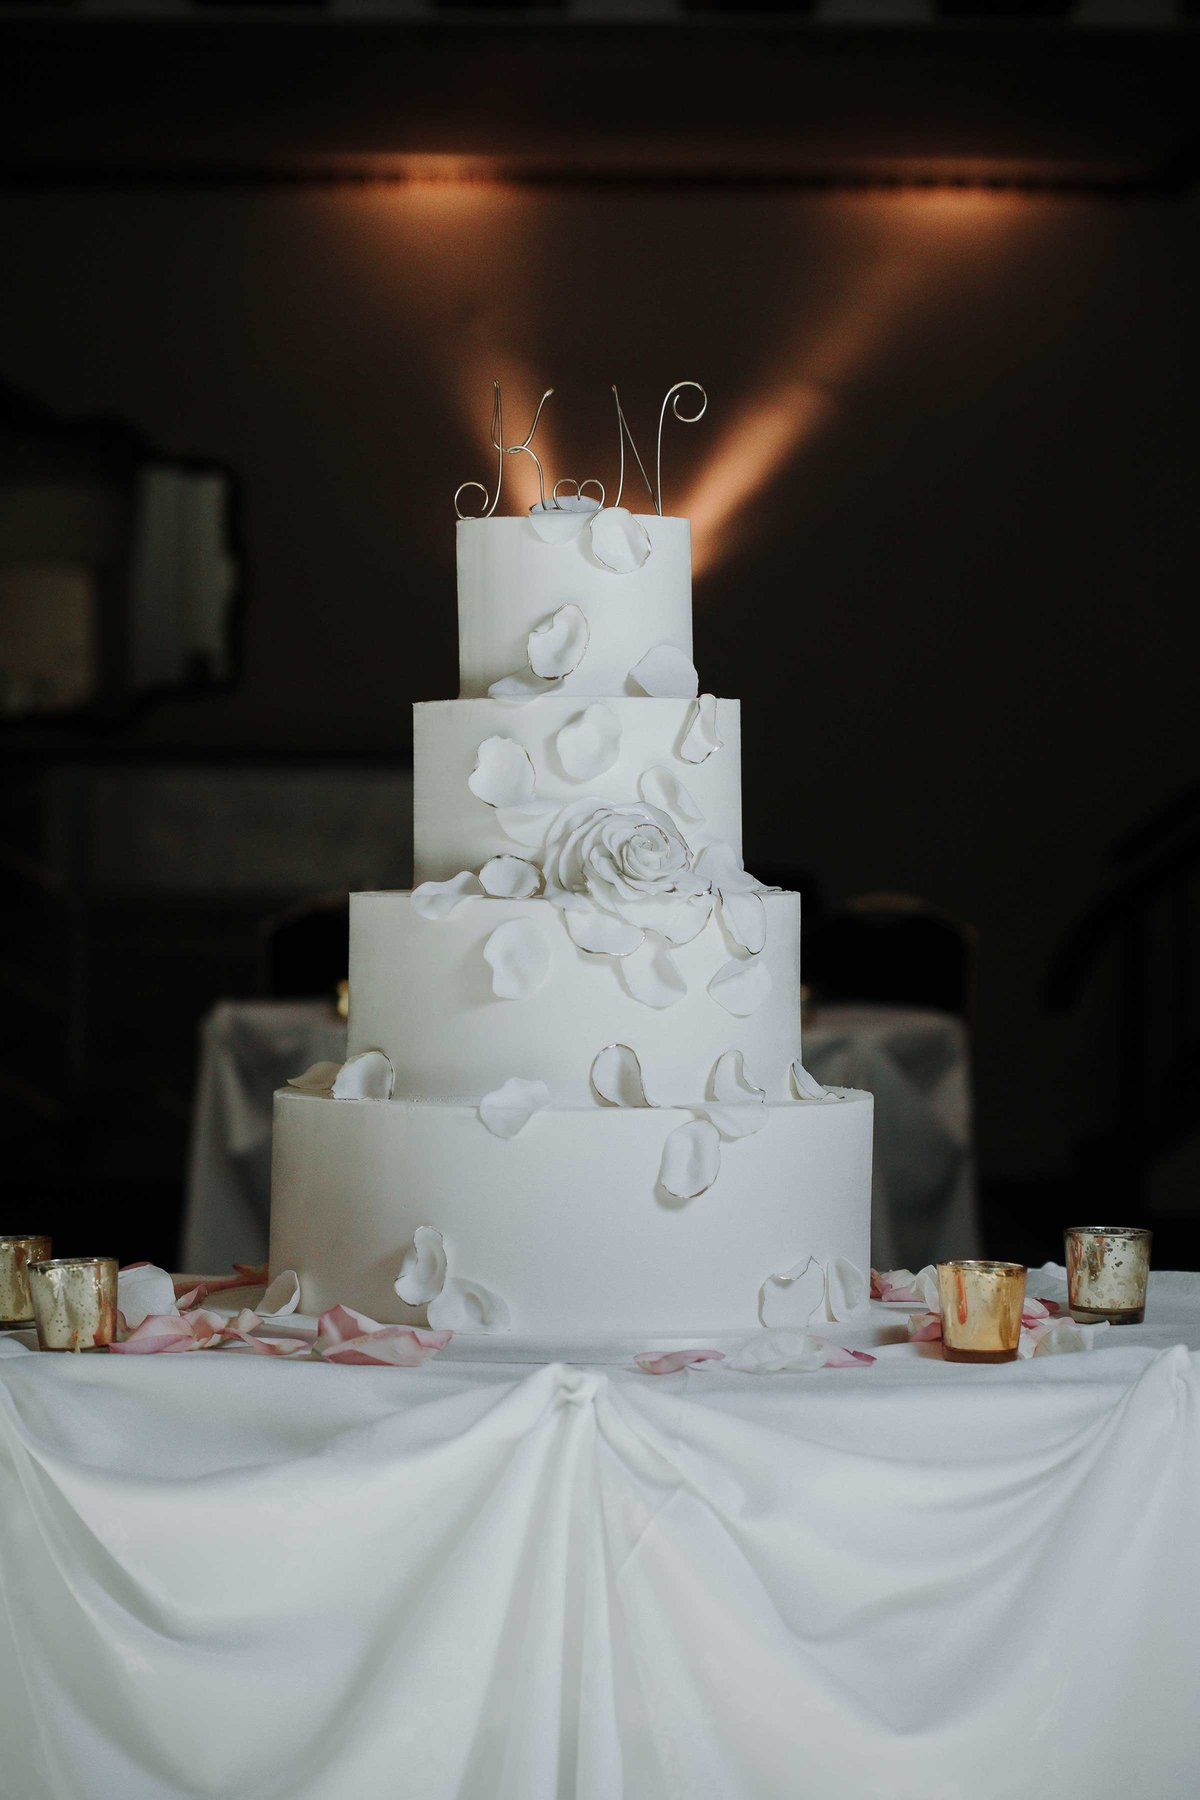 knickerbocker-wedding-cake